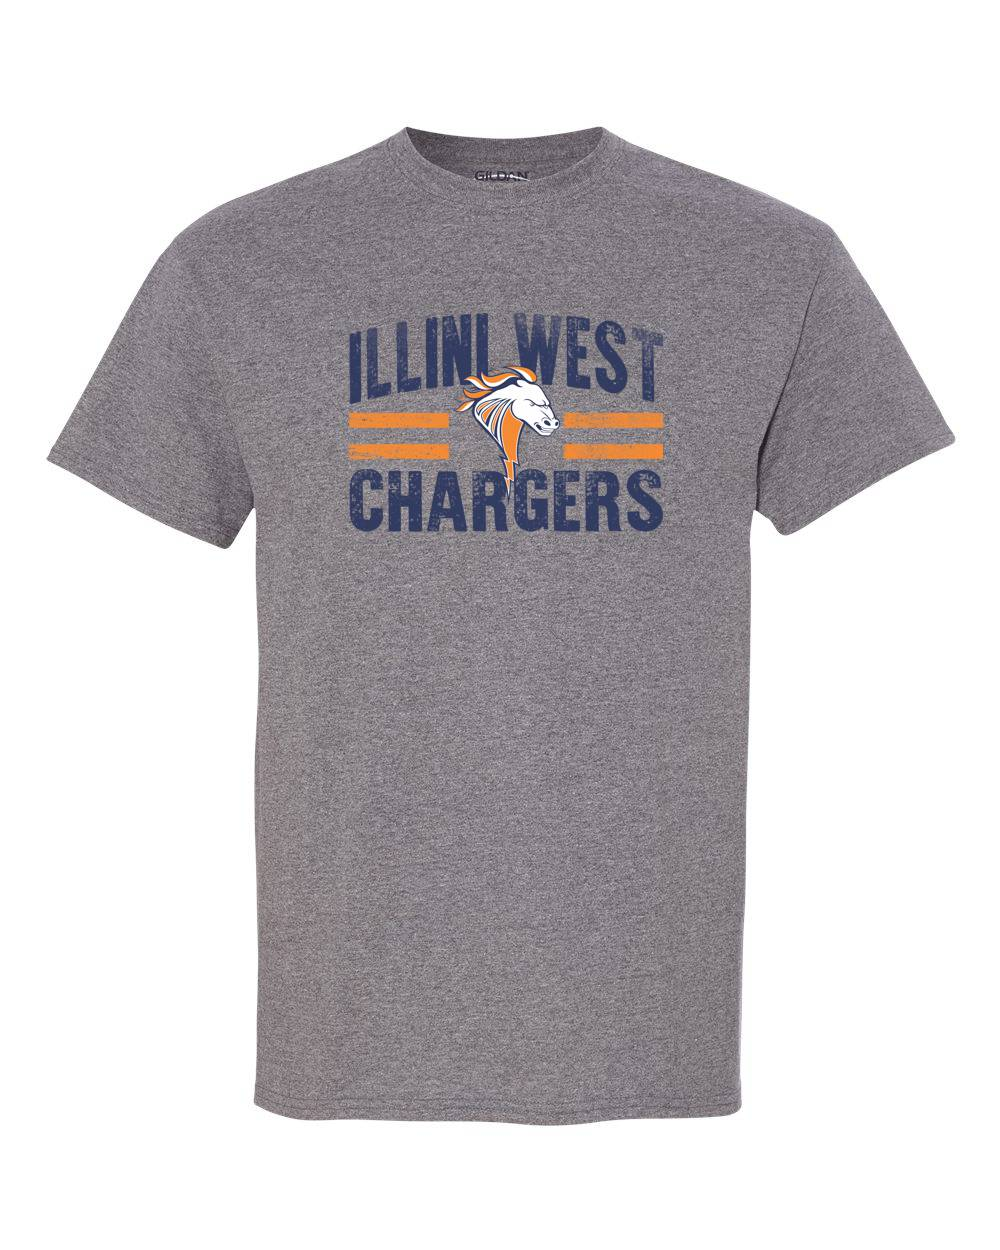 IW Chargers 2019a